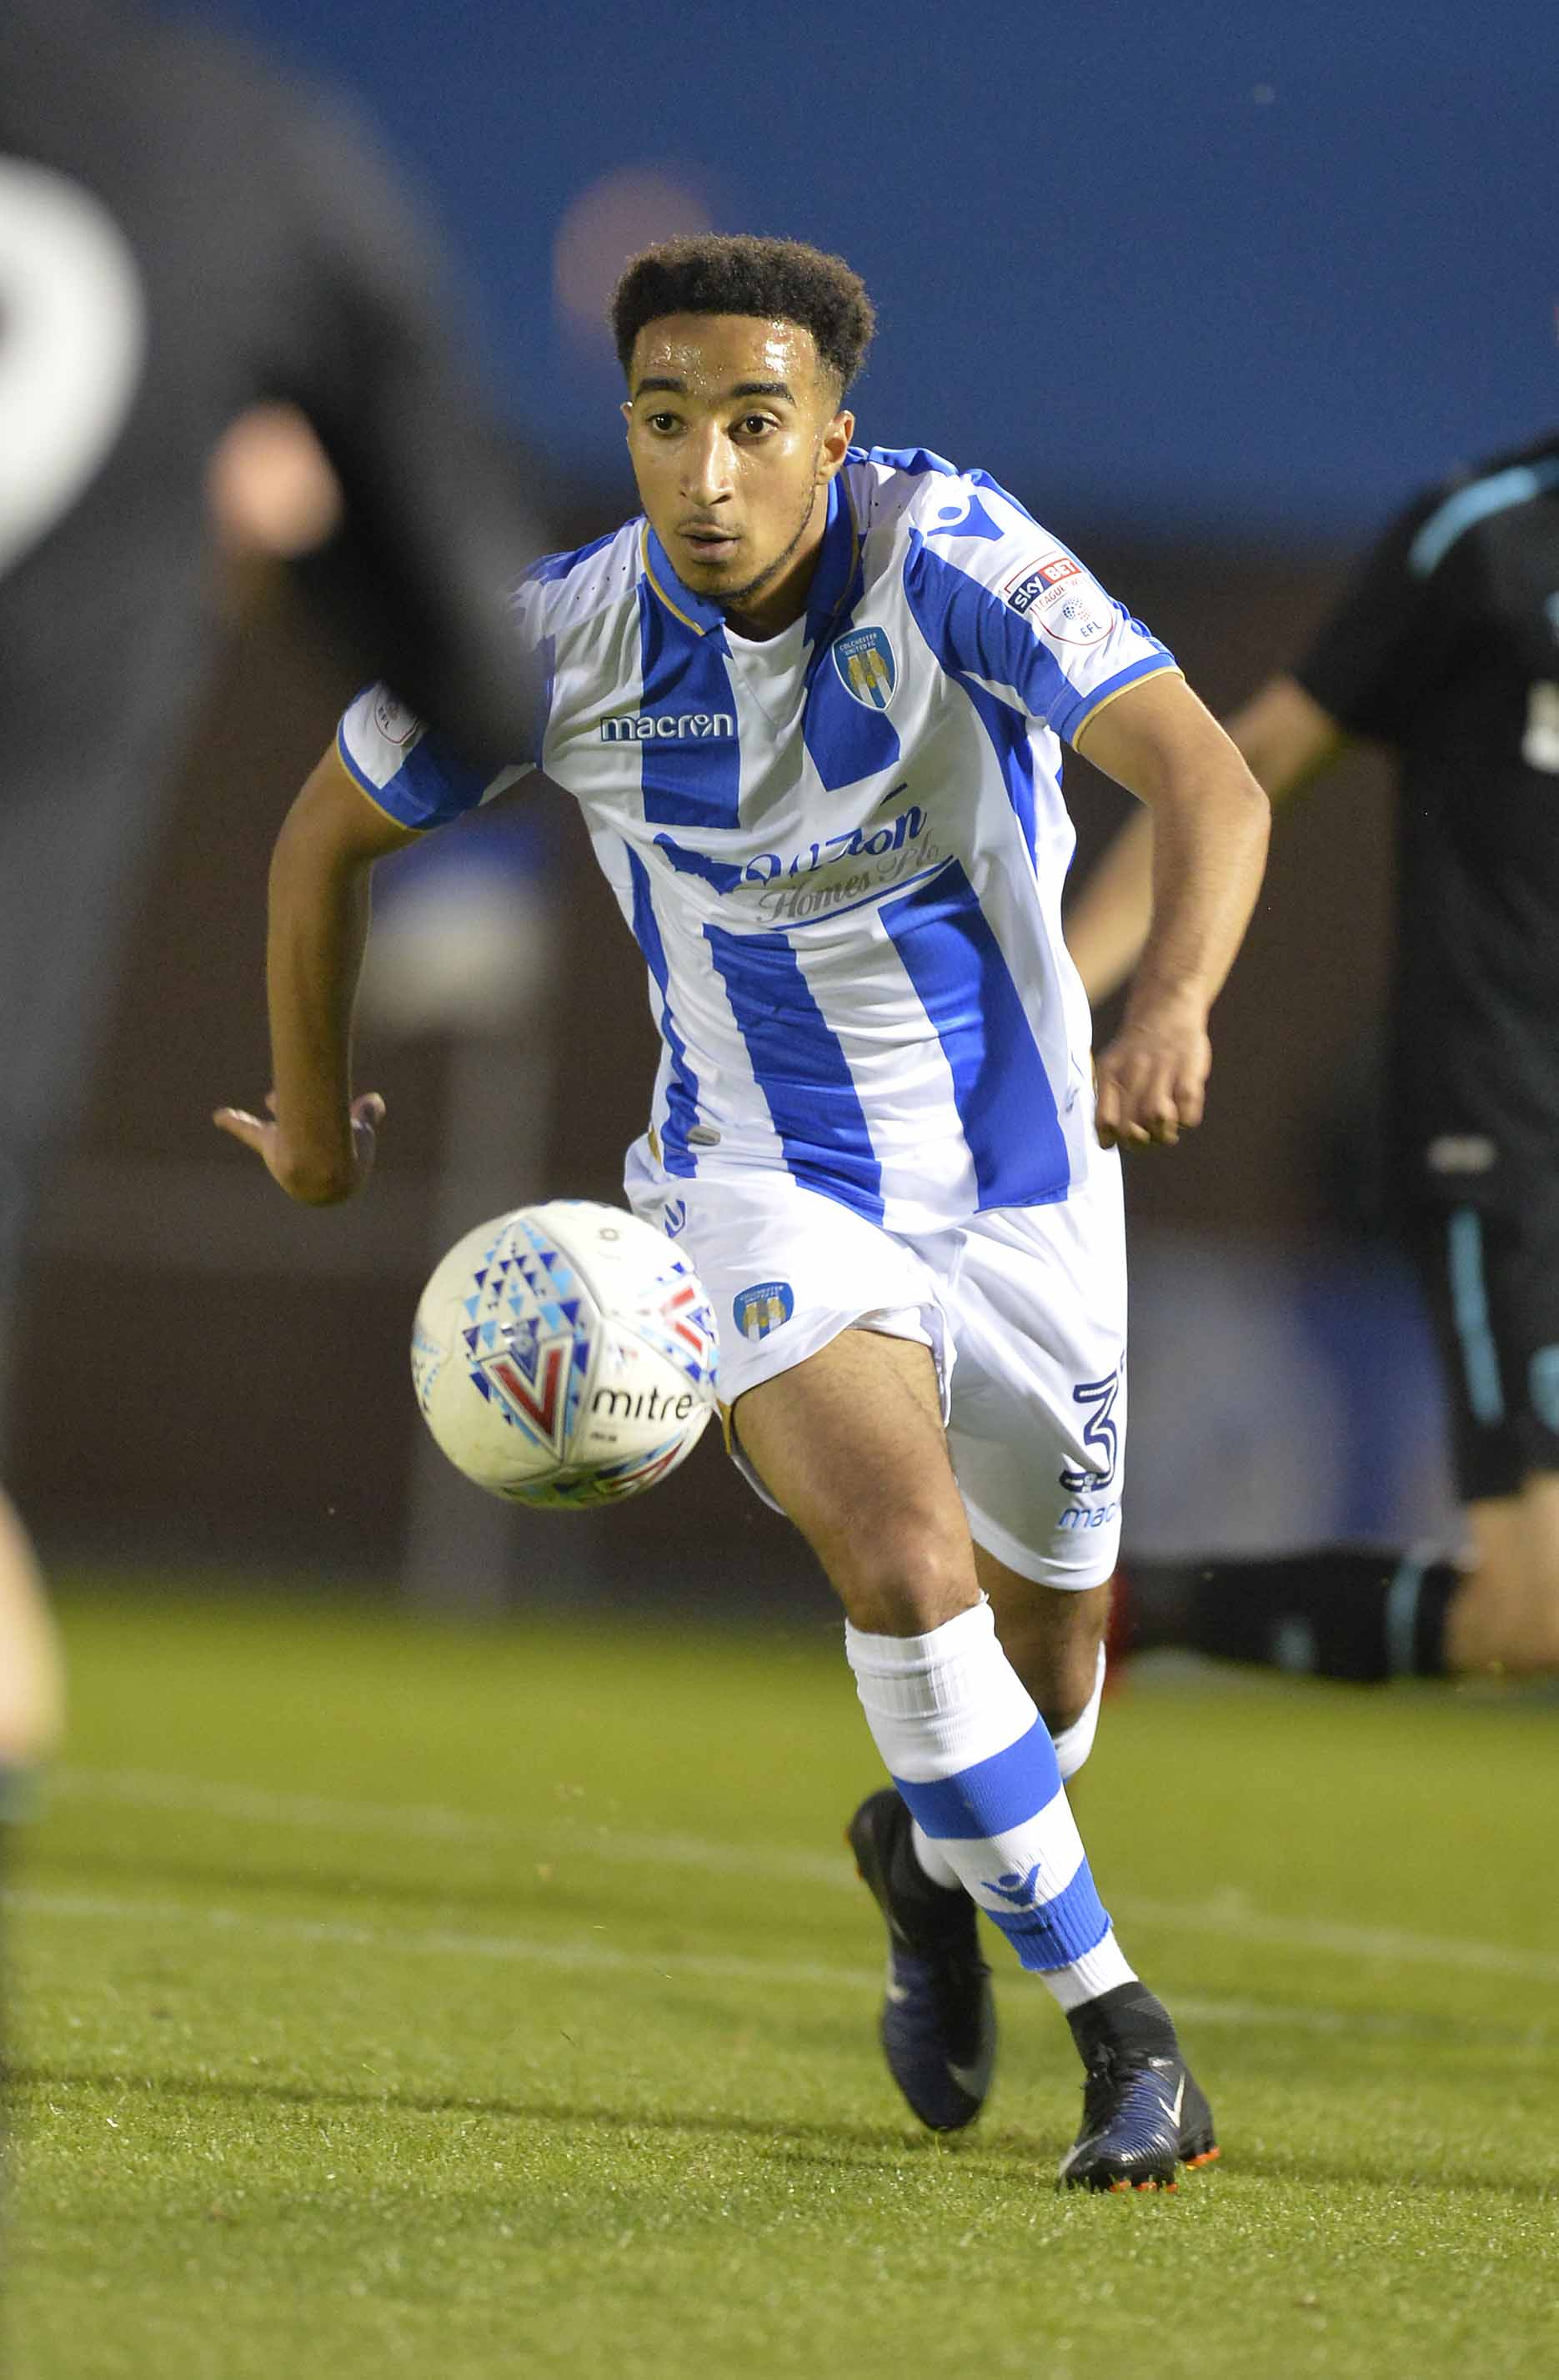 Back in action - Tariq Issa continued his comeback from an abductor injury to play for Colchester United under-23s in their 3-0 loss at Vicarage Road